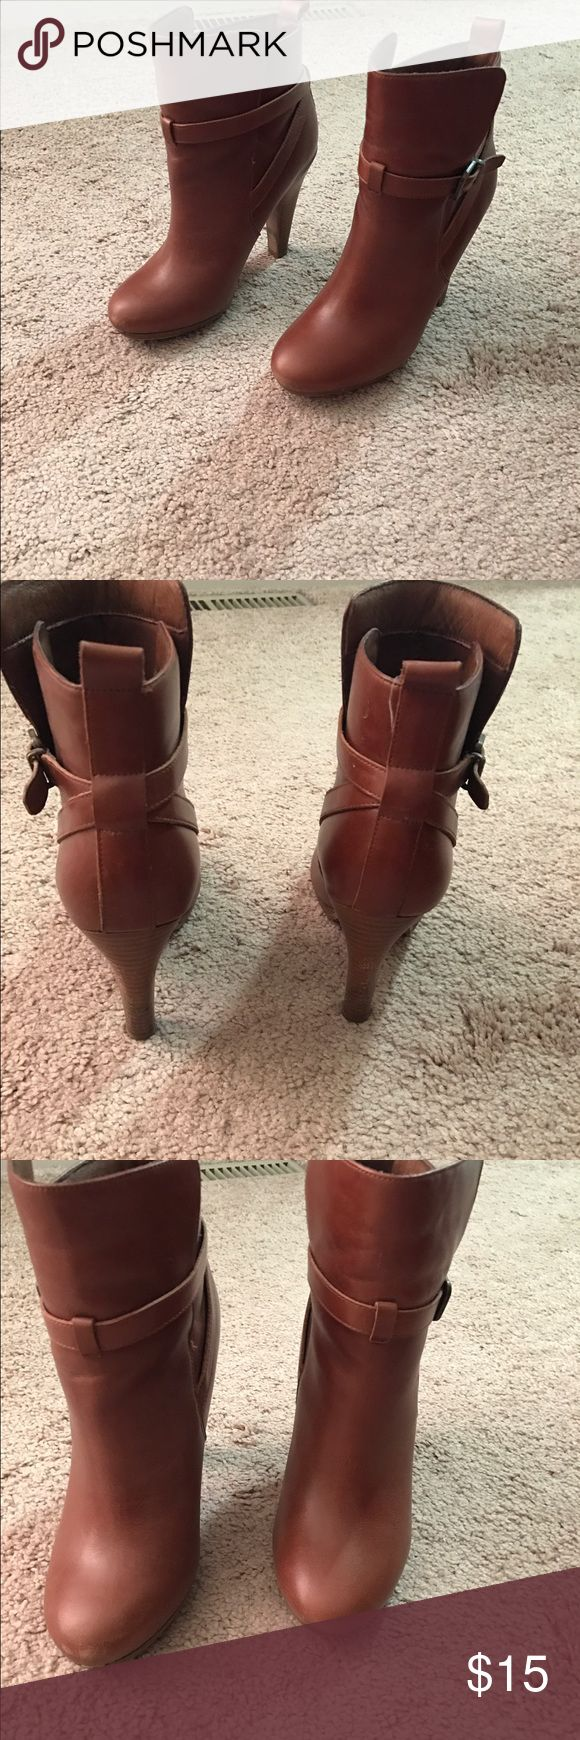 Aldo boots Aldo boots, tan, unsure if size 6.5 or 7, heavily worn, comfortable Shoes Ankle Boots & Booties